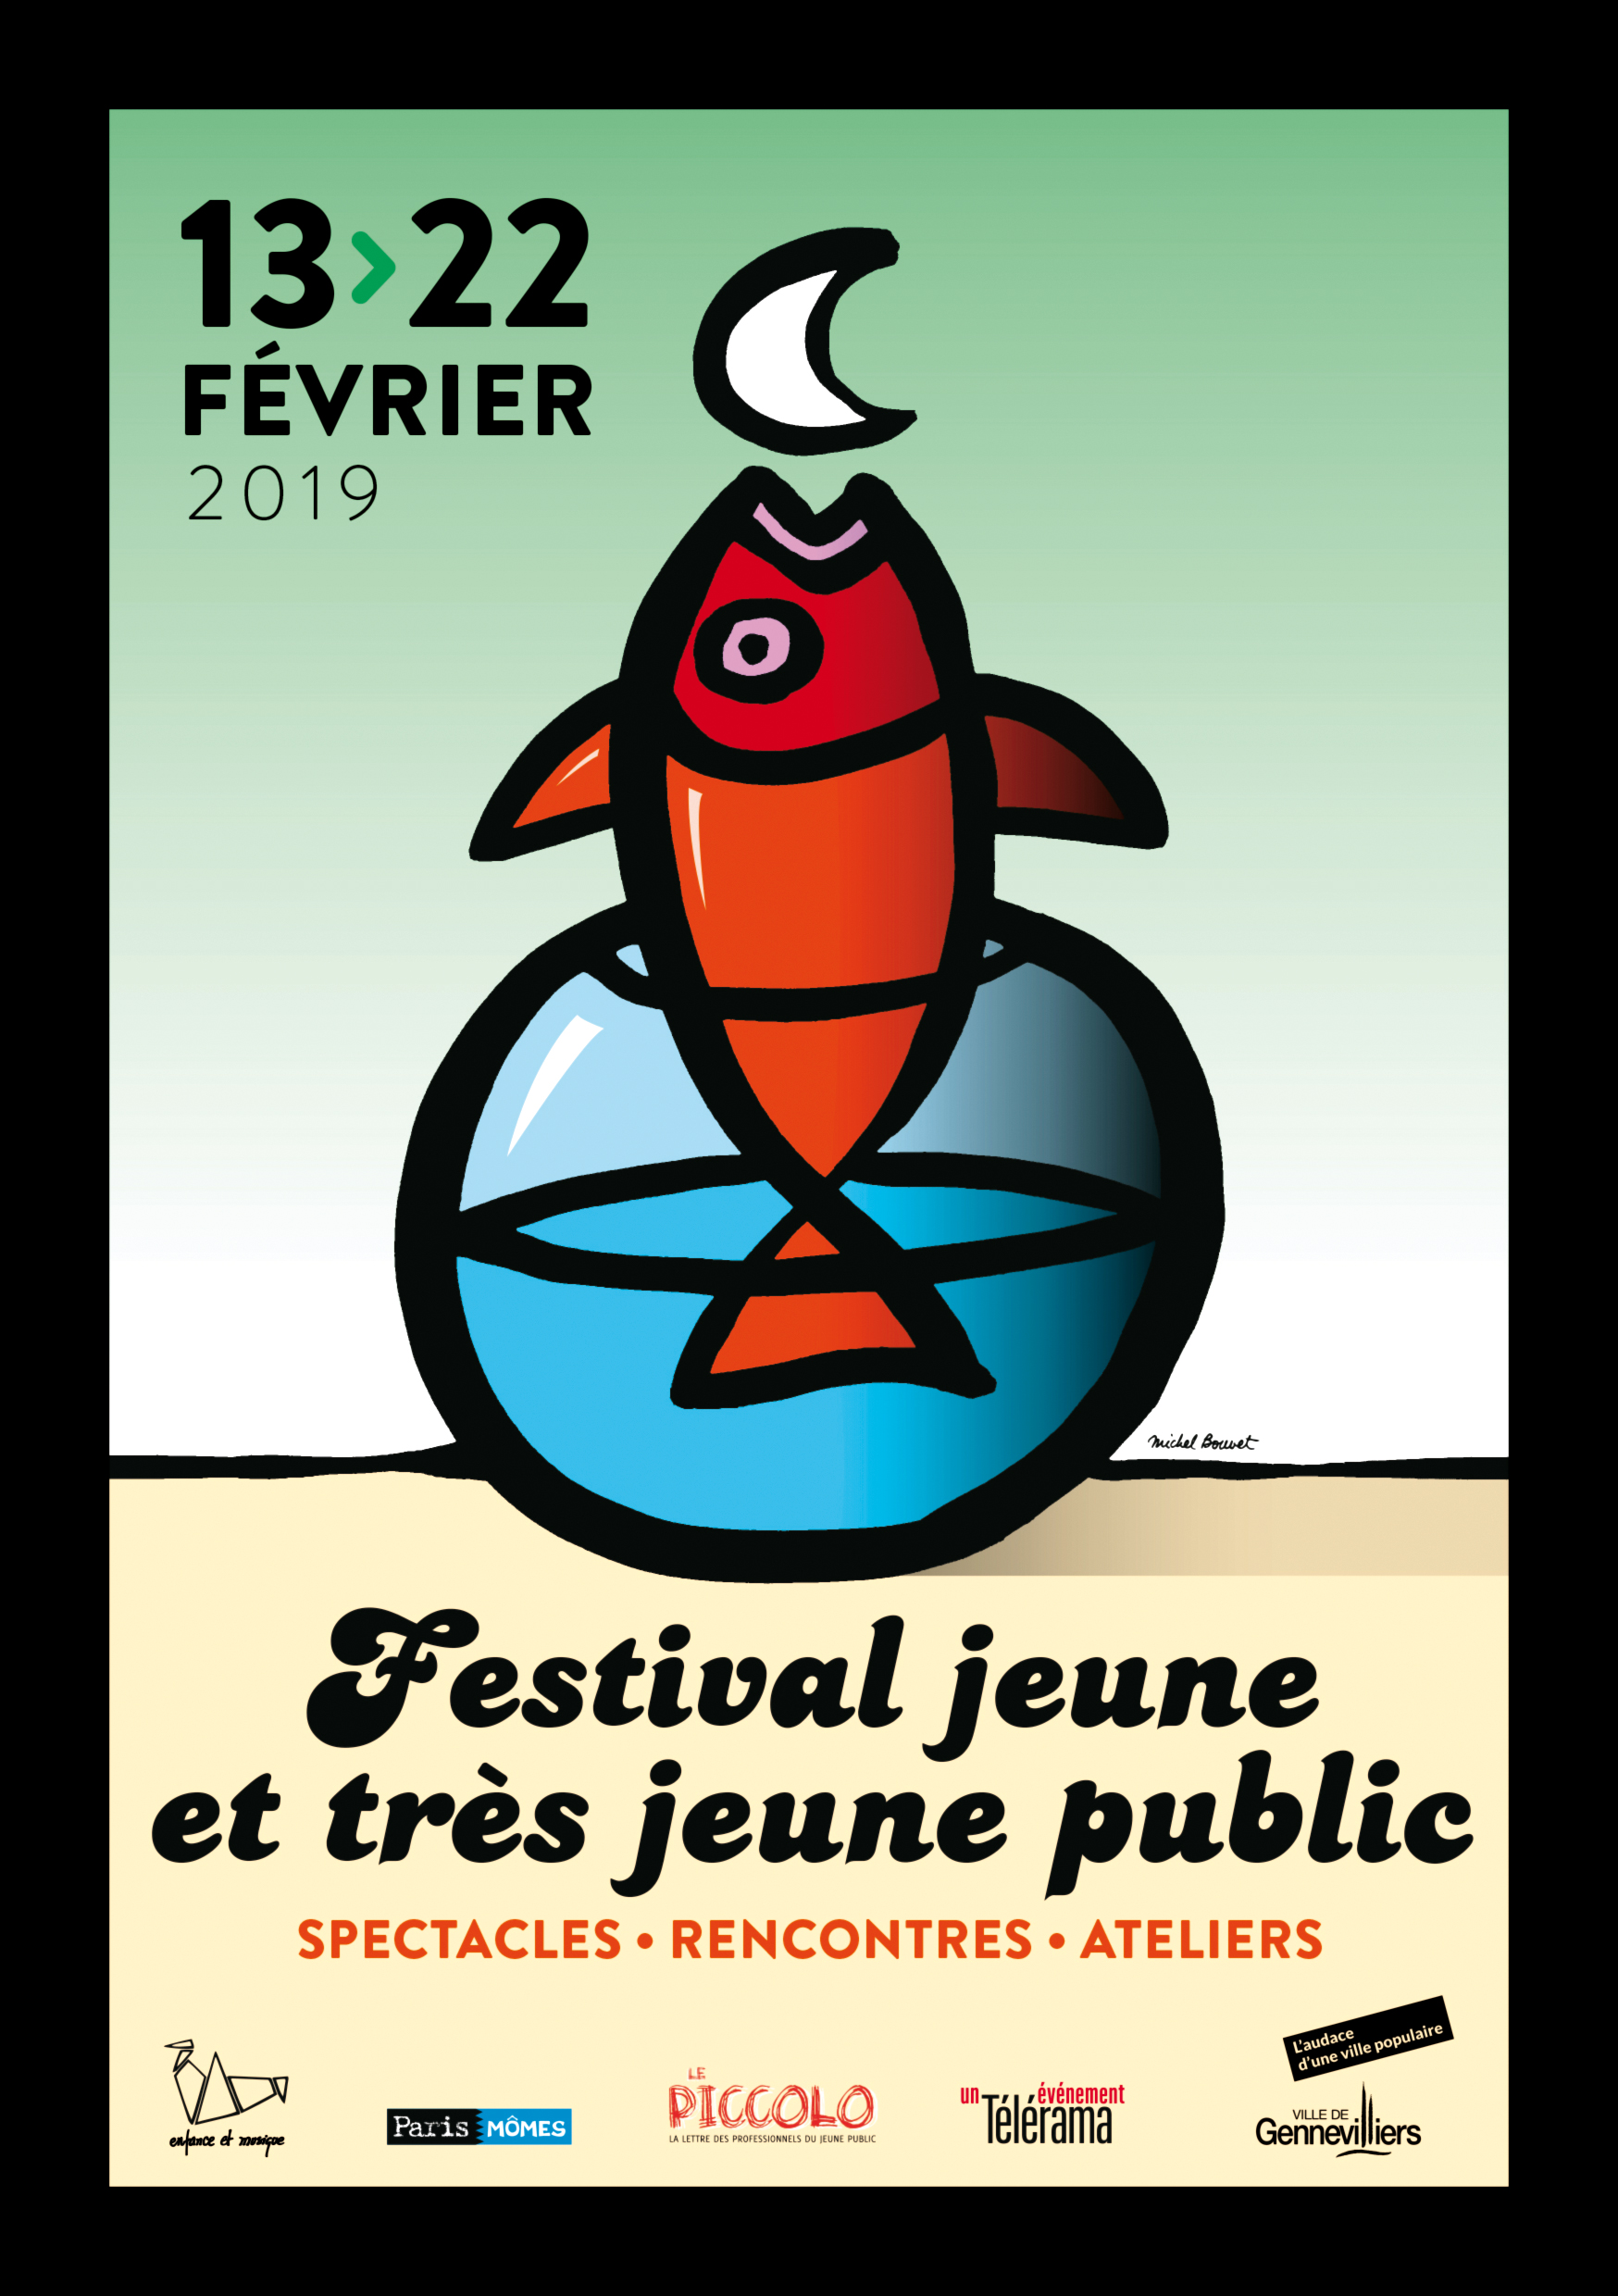 populaires rencontres spectacles